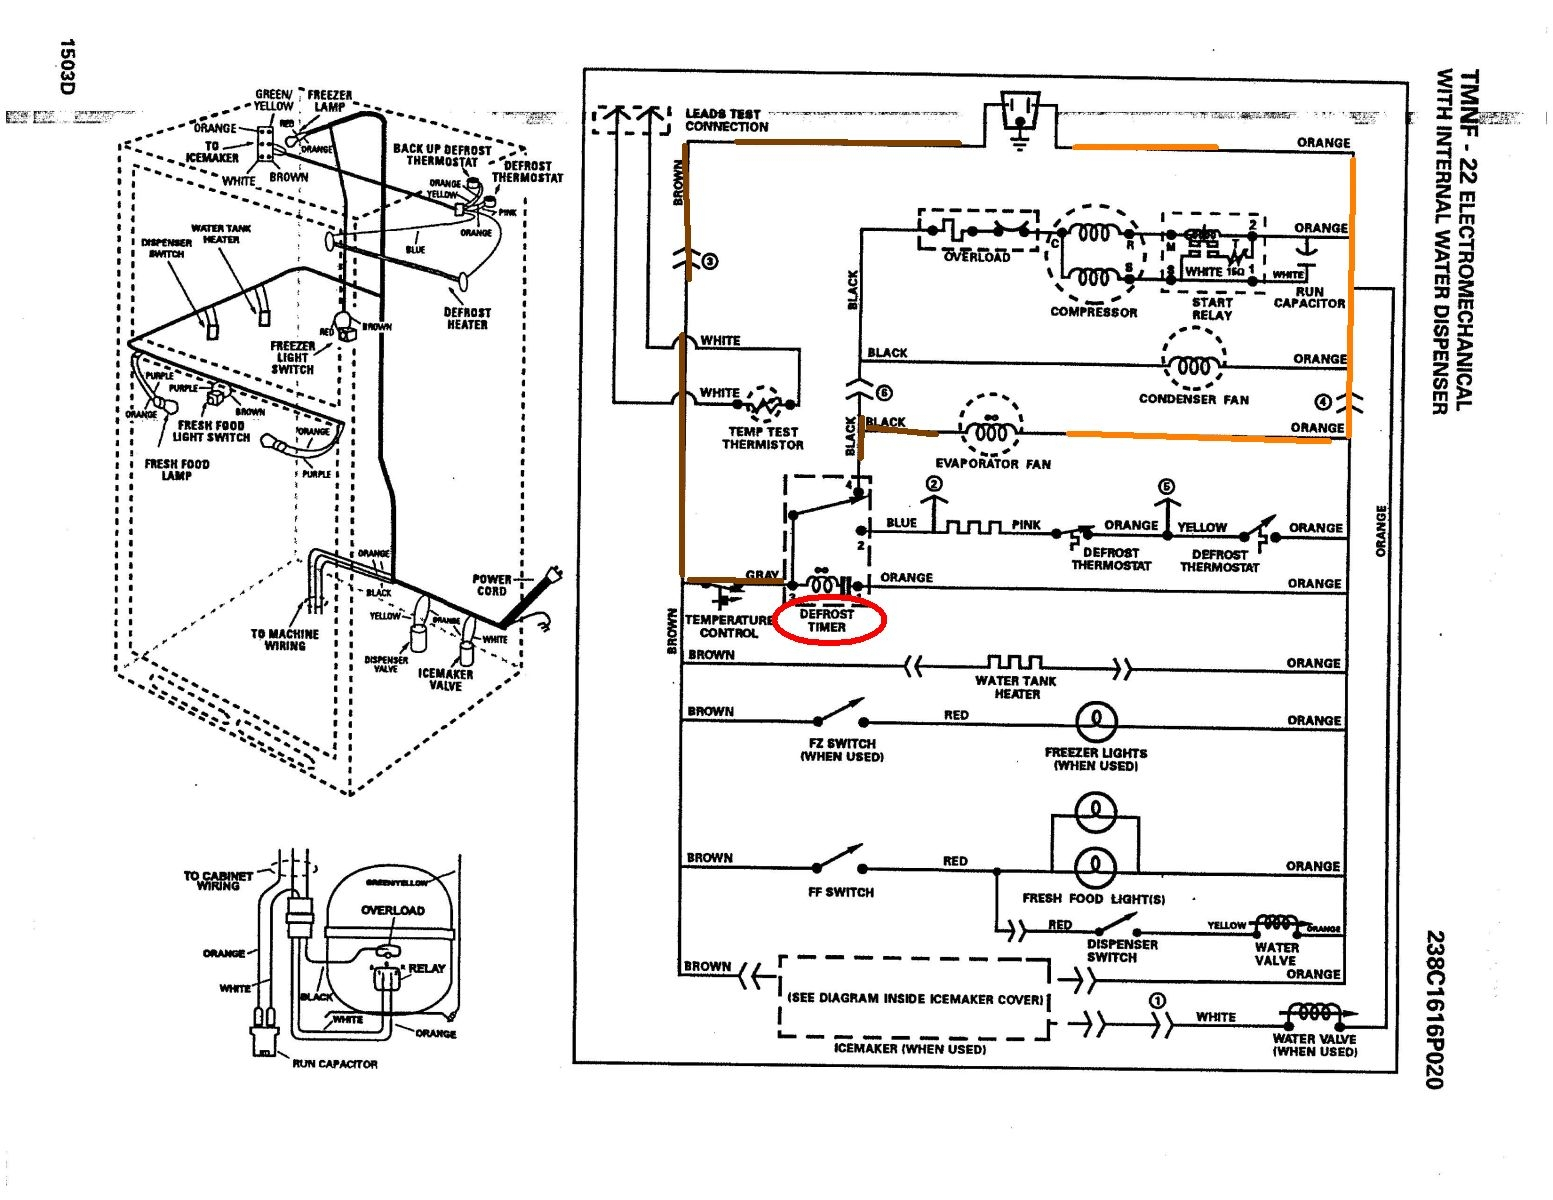 Wiring Diagram For Ge Profile Dishwasher - Diagrams Catalogue on